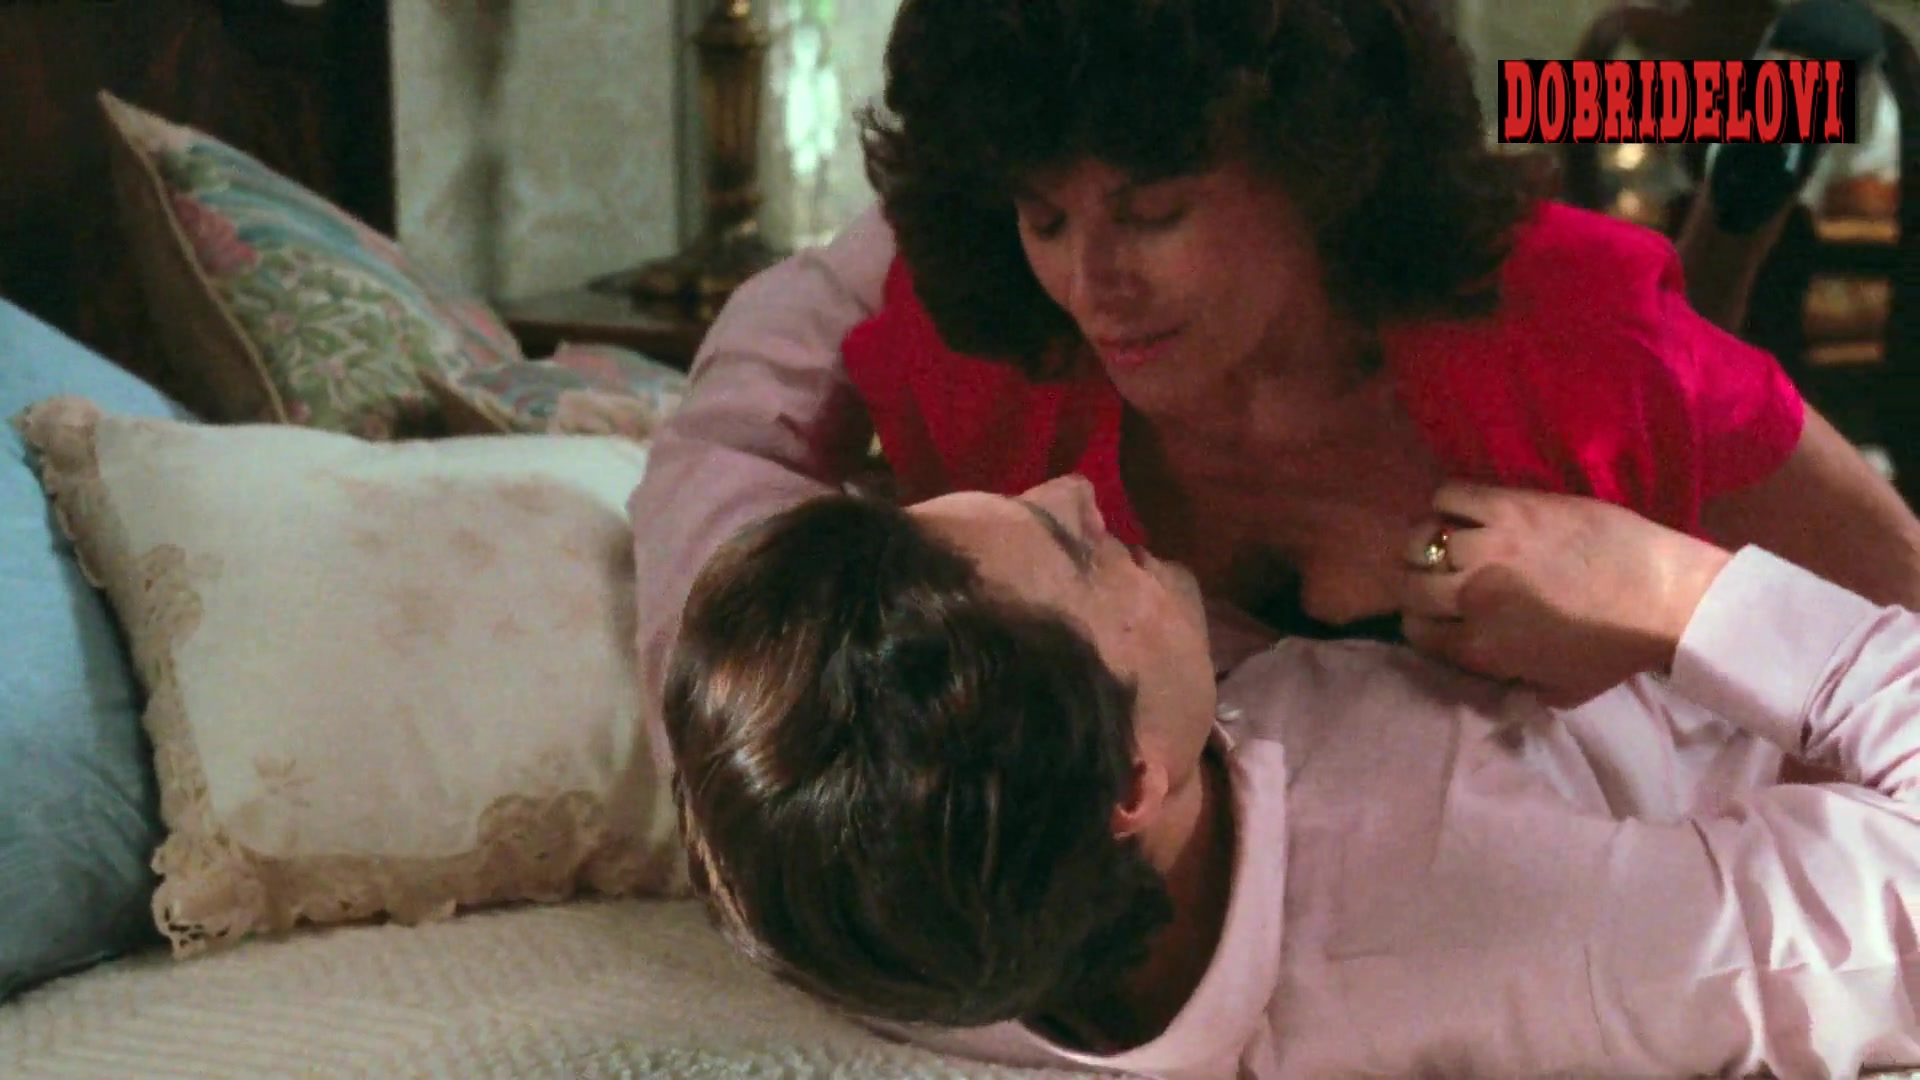 Adrienne Barbeau breasts squeeze scene from Two Evil Eyes